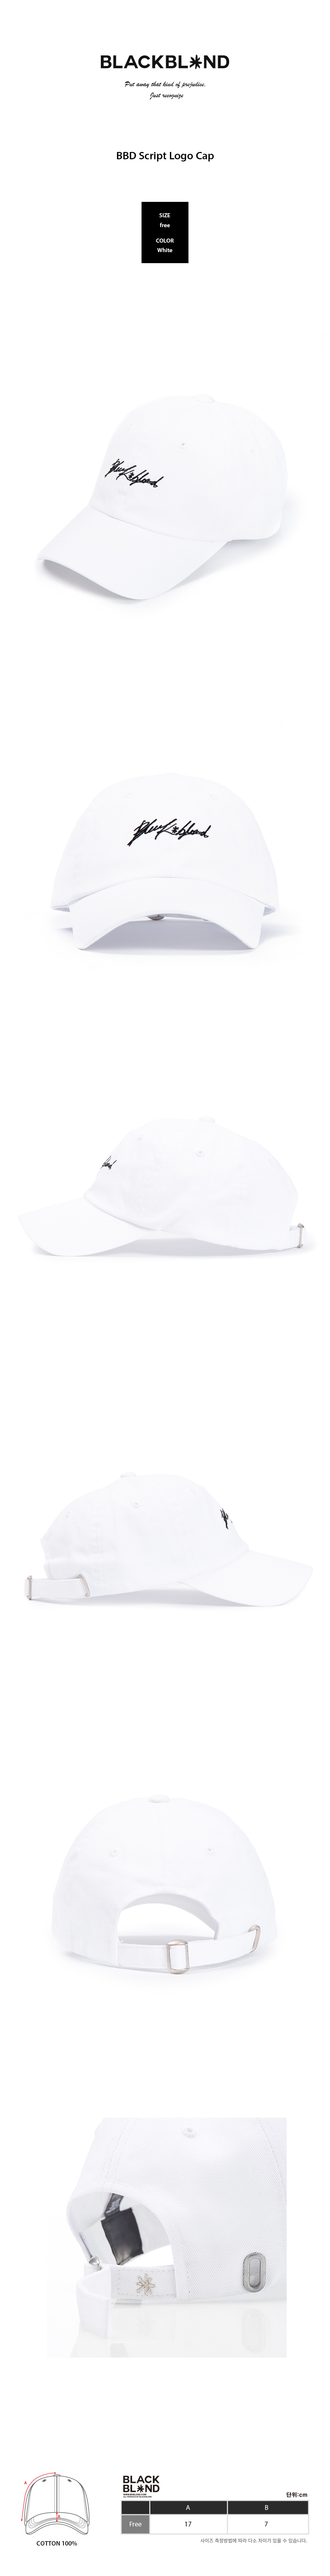 copy-1516010103-rough-logo-ball-cap-wh.jpg